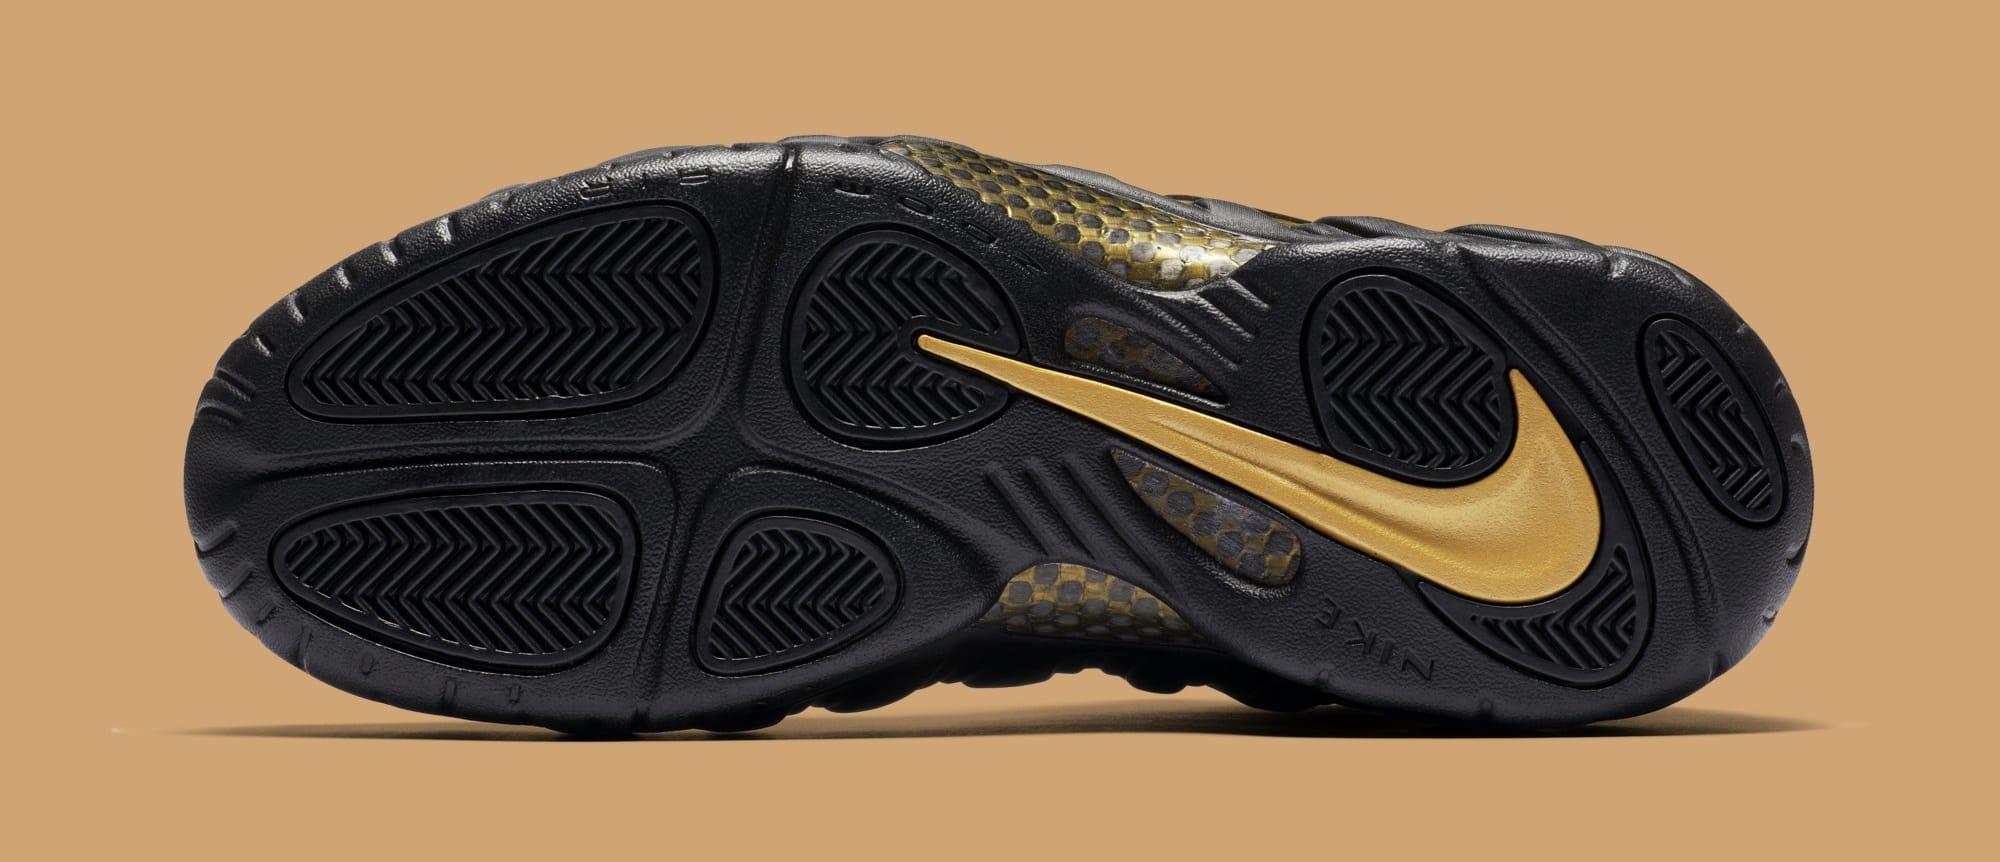 size 40 bbaee 0425f Nike Air Foamposite Pro 'Black/Metallic Gold' Release Date ...